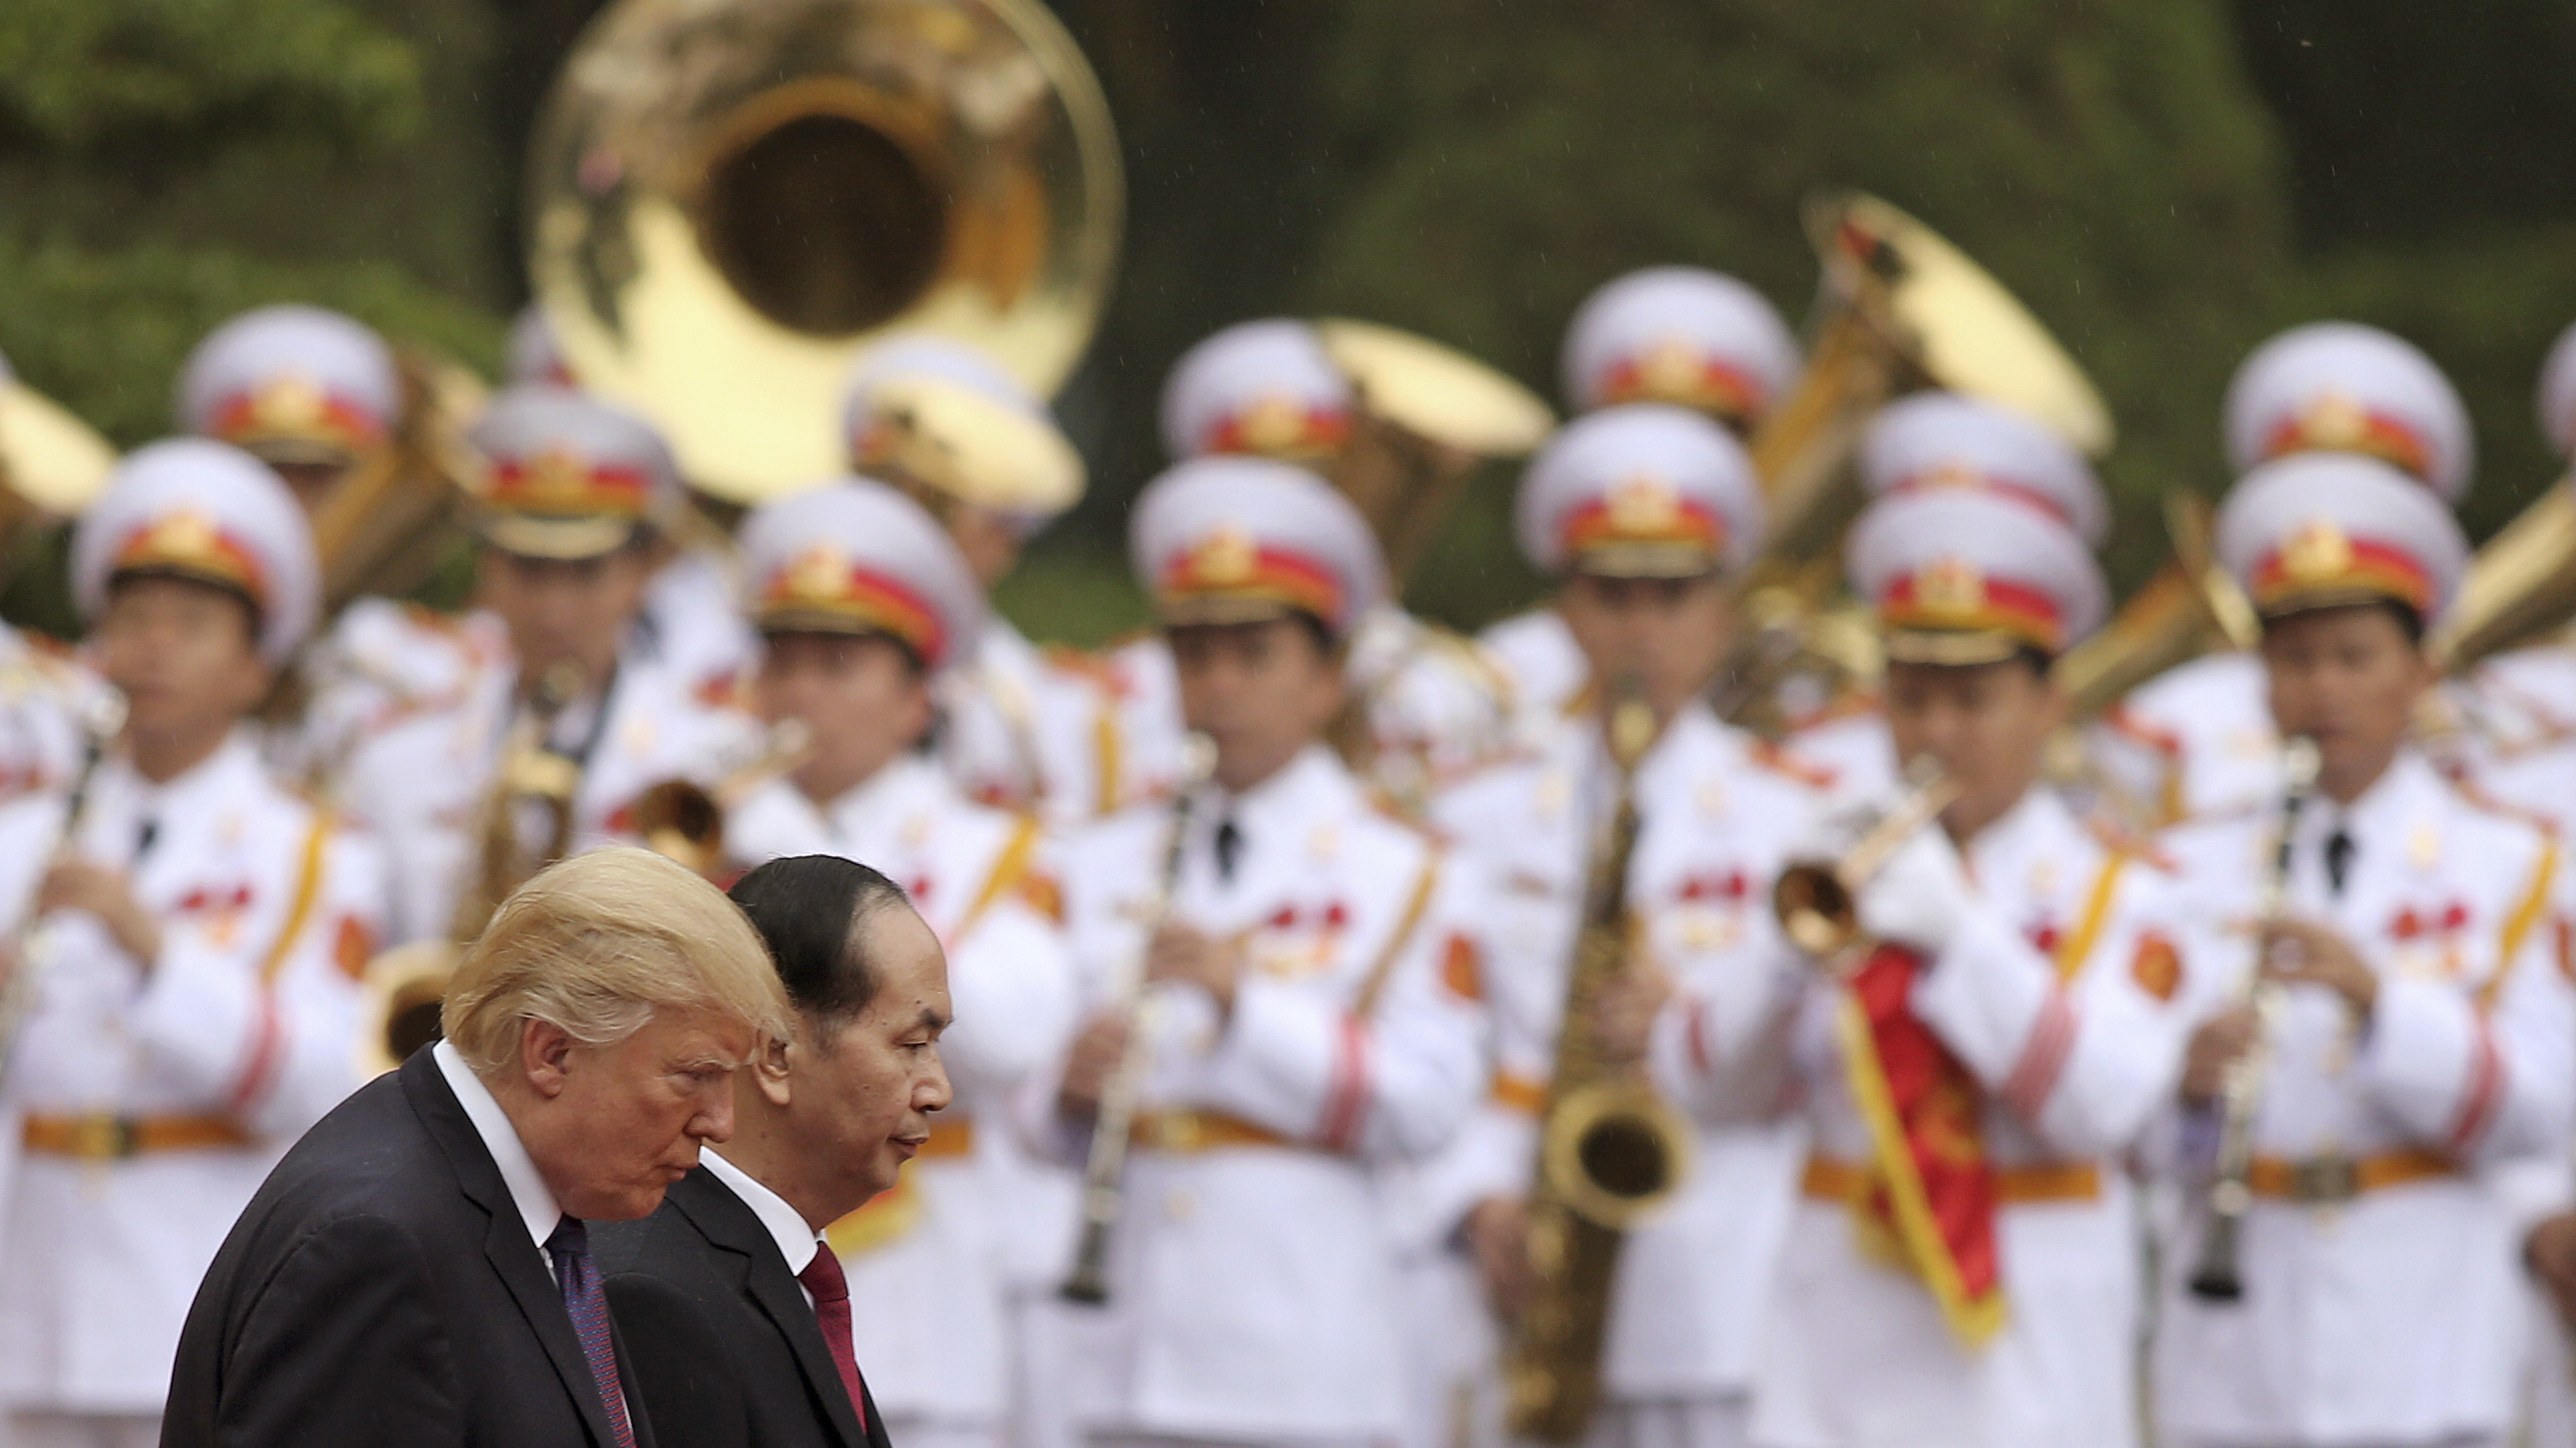 Military Staff Removed From White House After 'Incident' On Trump's Asia Trip